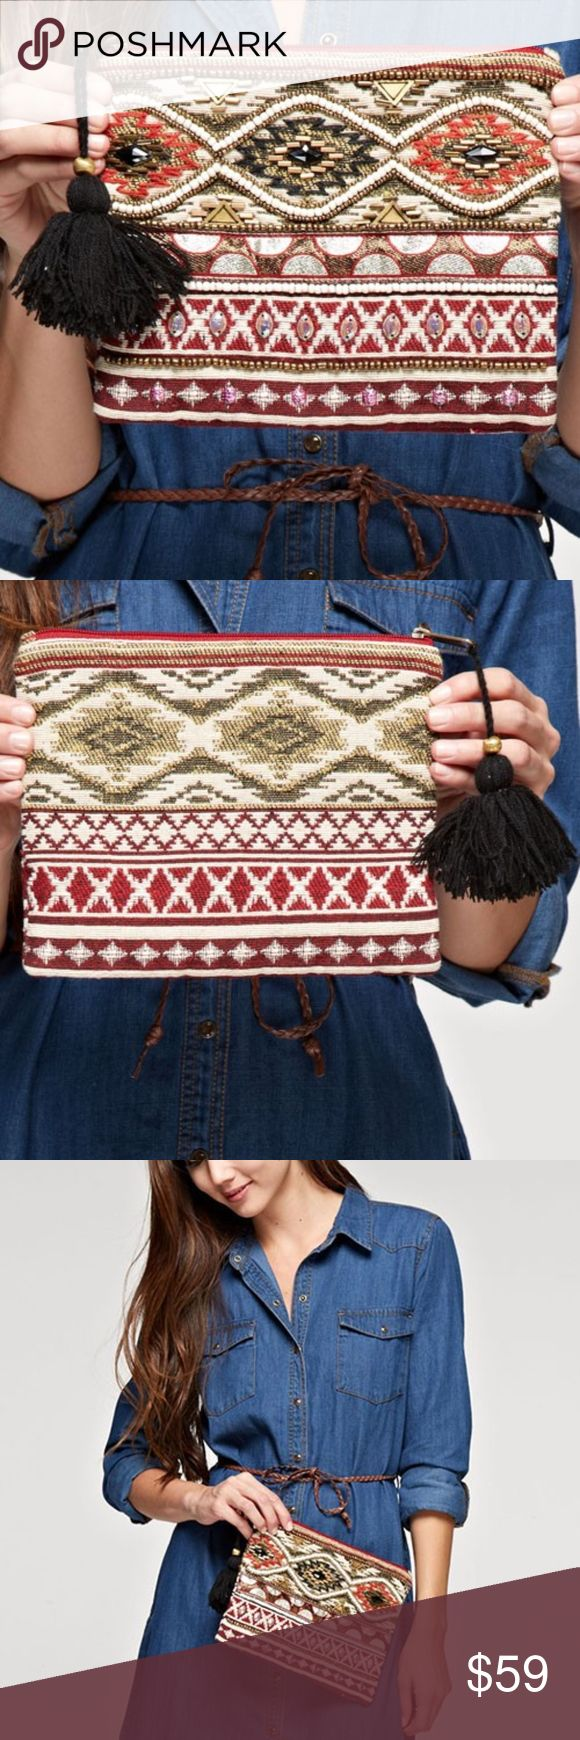 LOVE STITCH AZTEC MOTIF BEADED MAKEUP BAG MULTI PATTERN MAKEUP BAG WITH BEADED DETAIL AND TASSEL SIPPER CLOSURE. I OPEN AND INSPECT EVERY ITEM FOR QUALITY INSURANCE. Love Stitch Bags Clutches & Wristlets